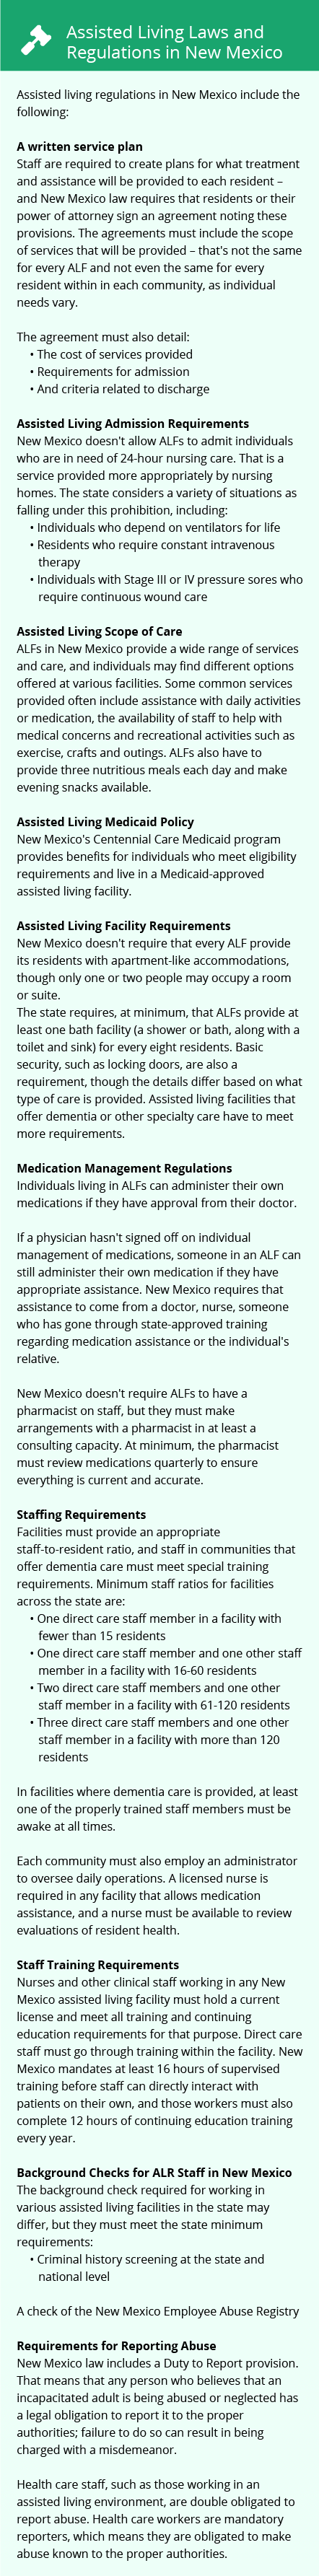 Laws and Regulations in New Mexico